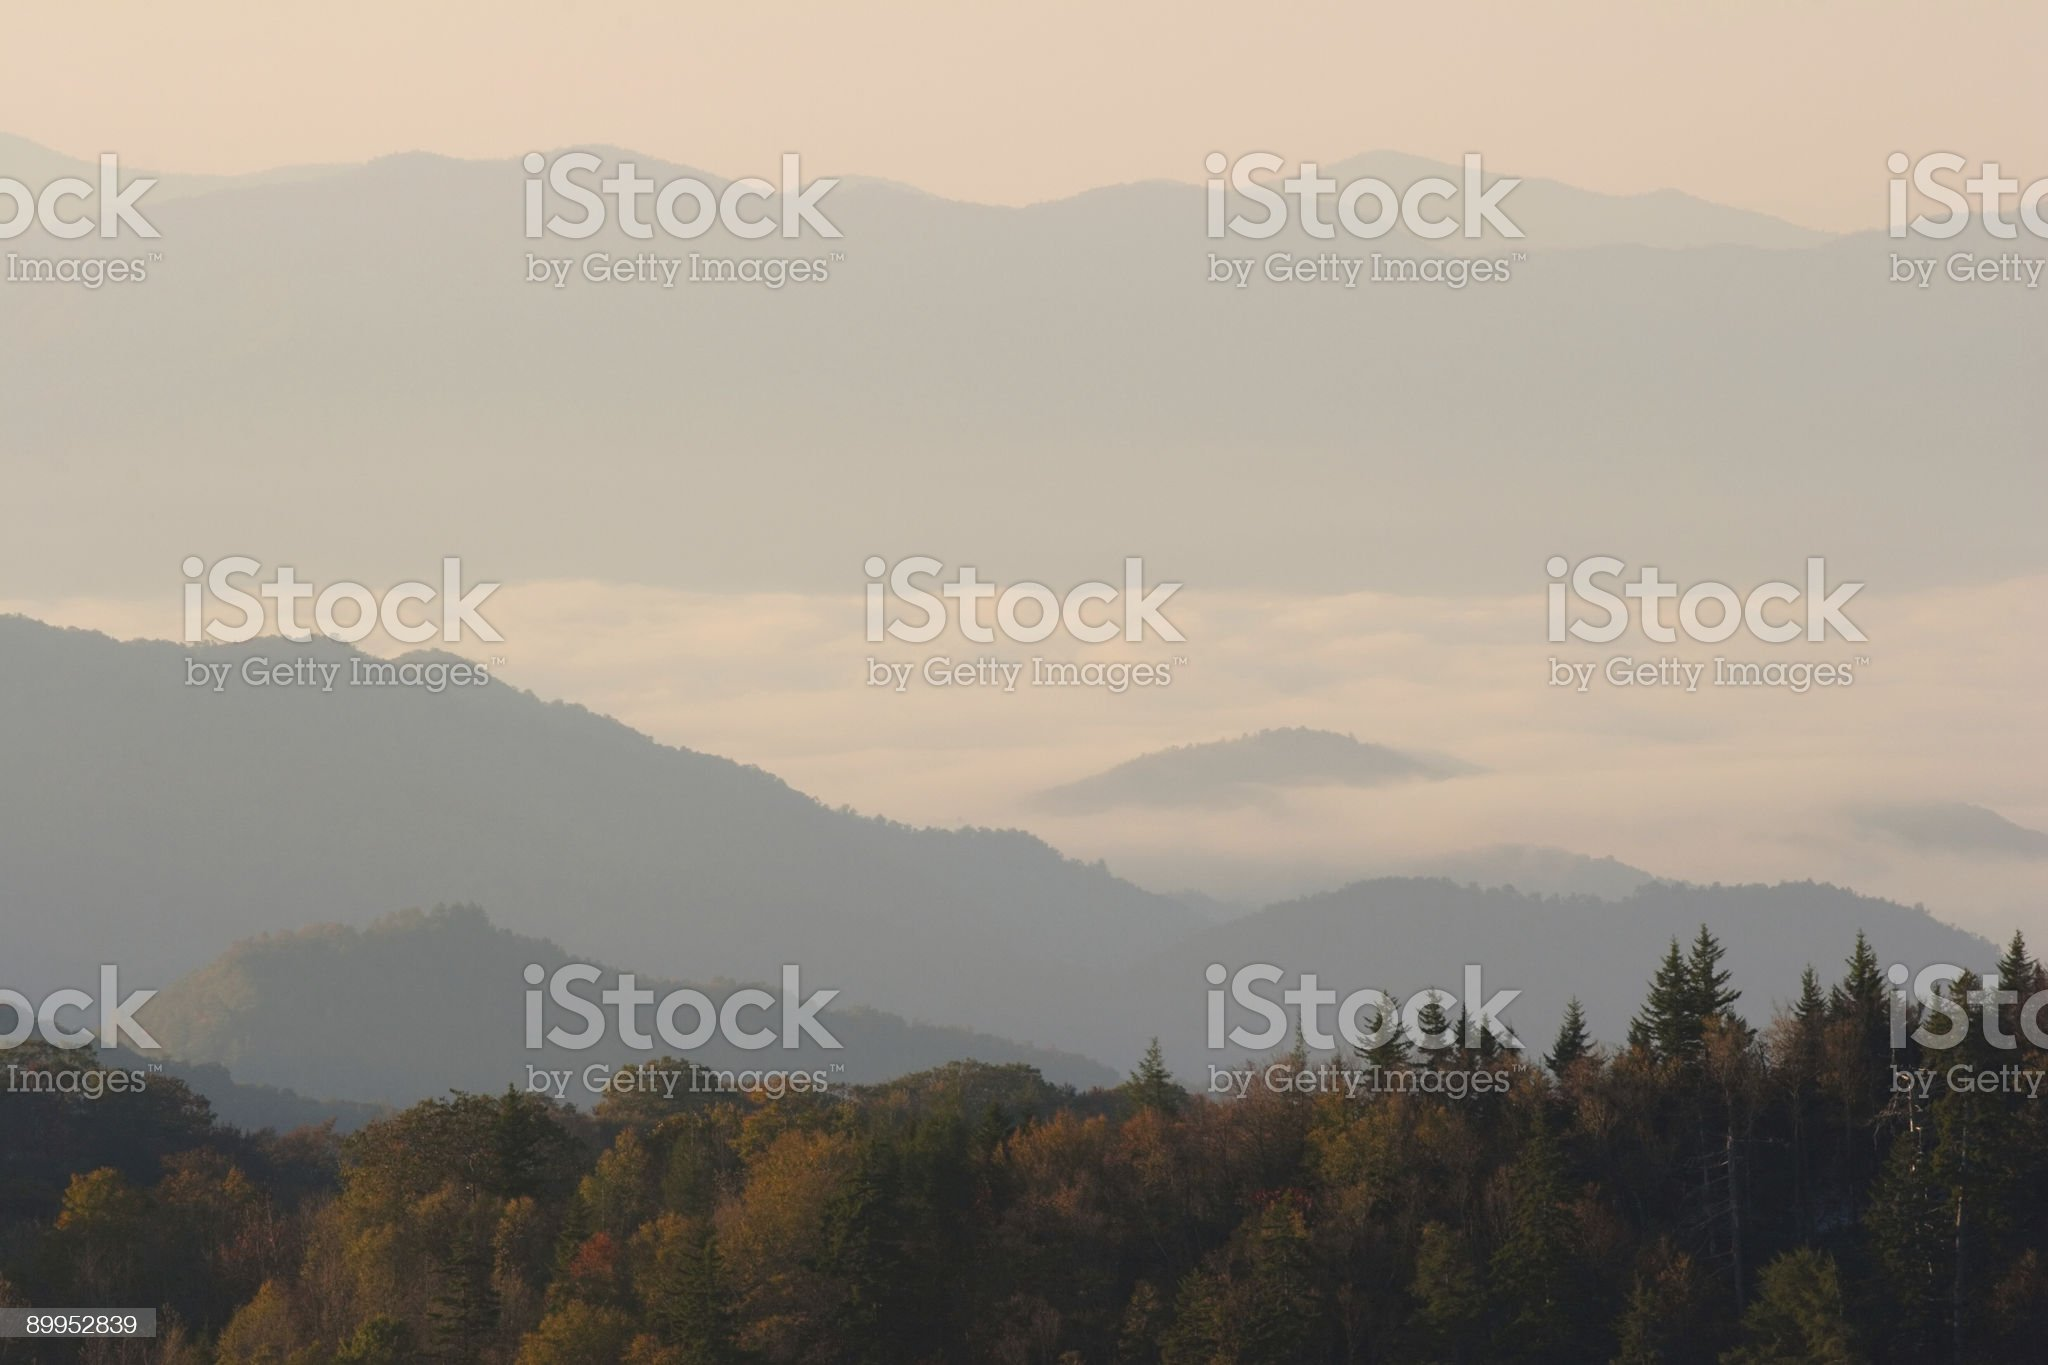 Clouds Between Autumn Mountain Peaks royalty-free stock photo